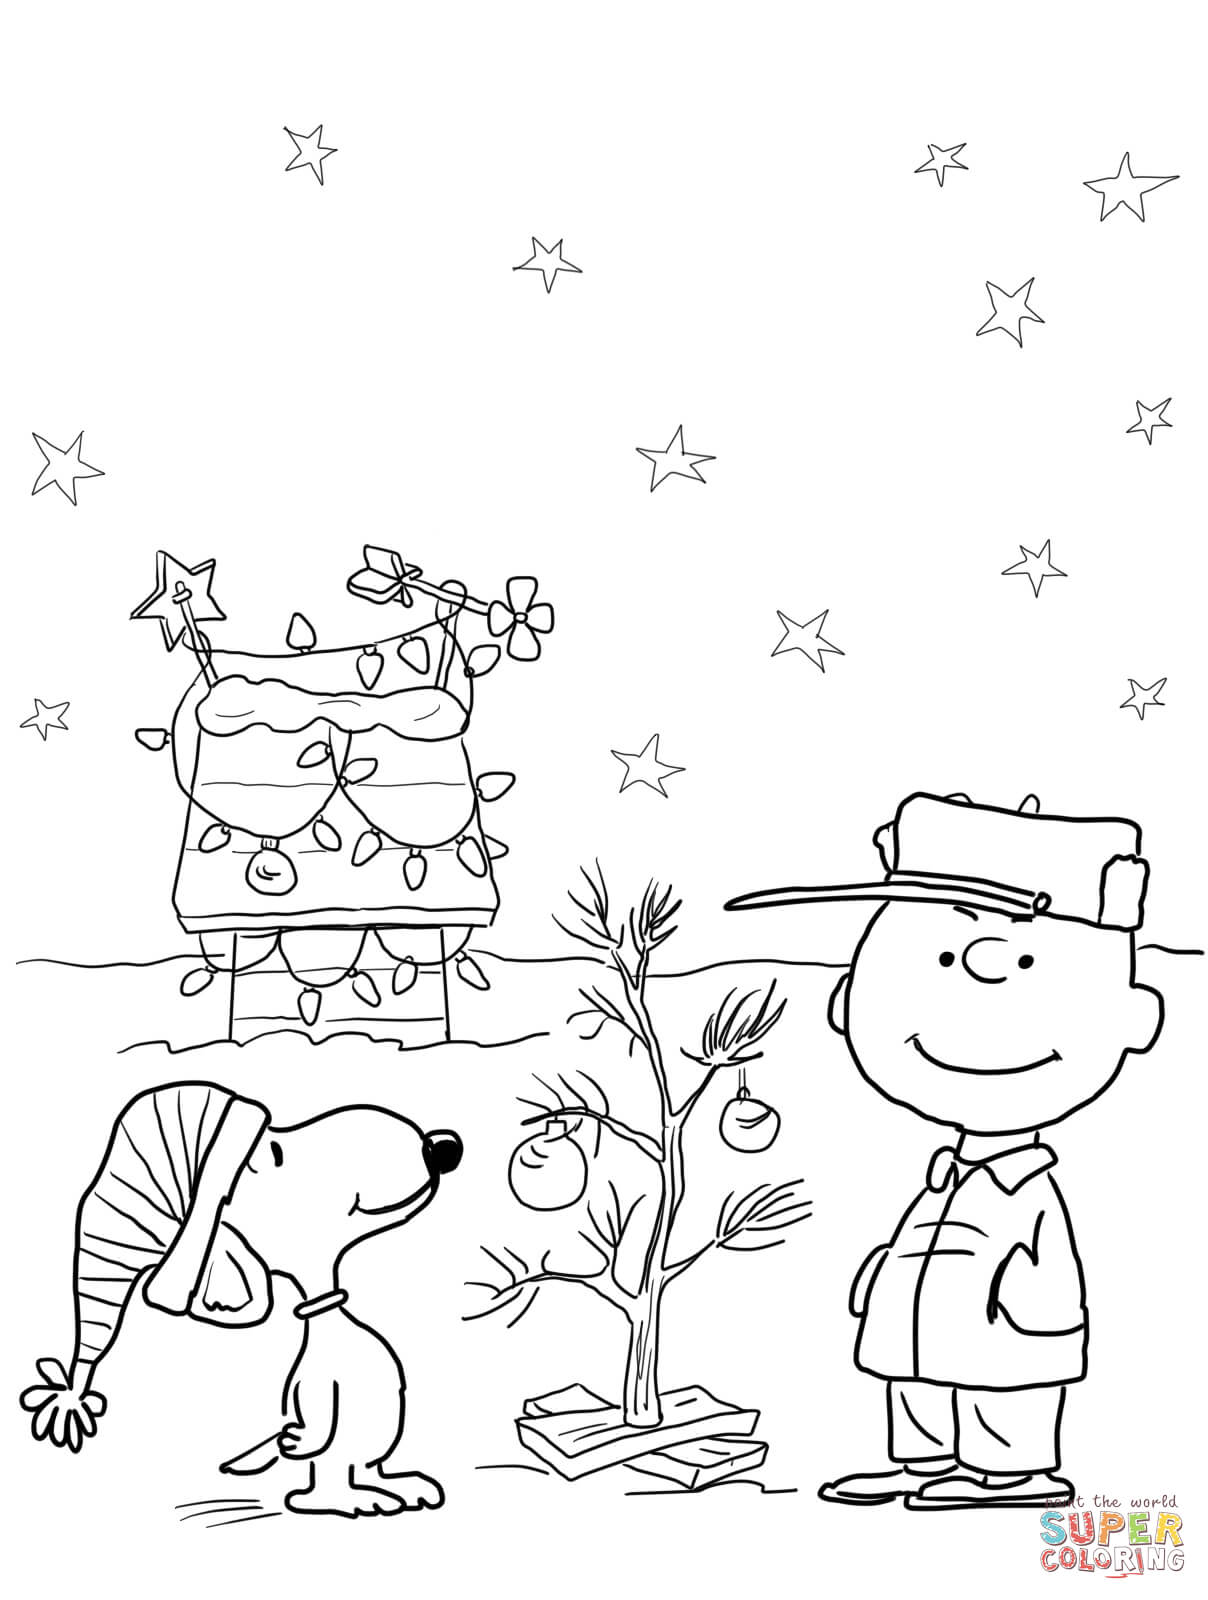 Christmas Coloring Pages To Print Free With Charlie Brown Page Printable